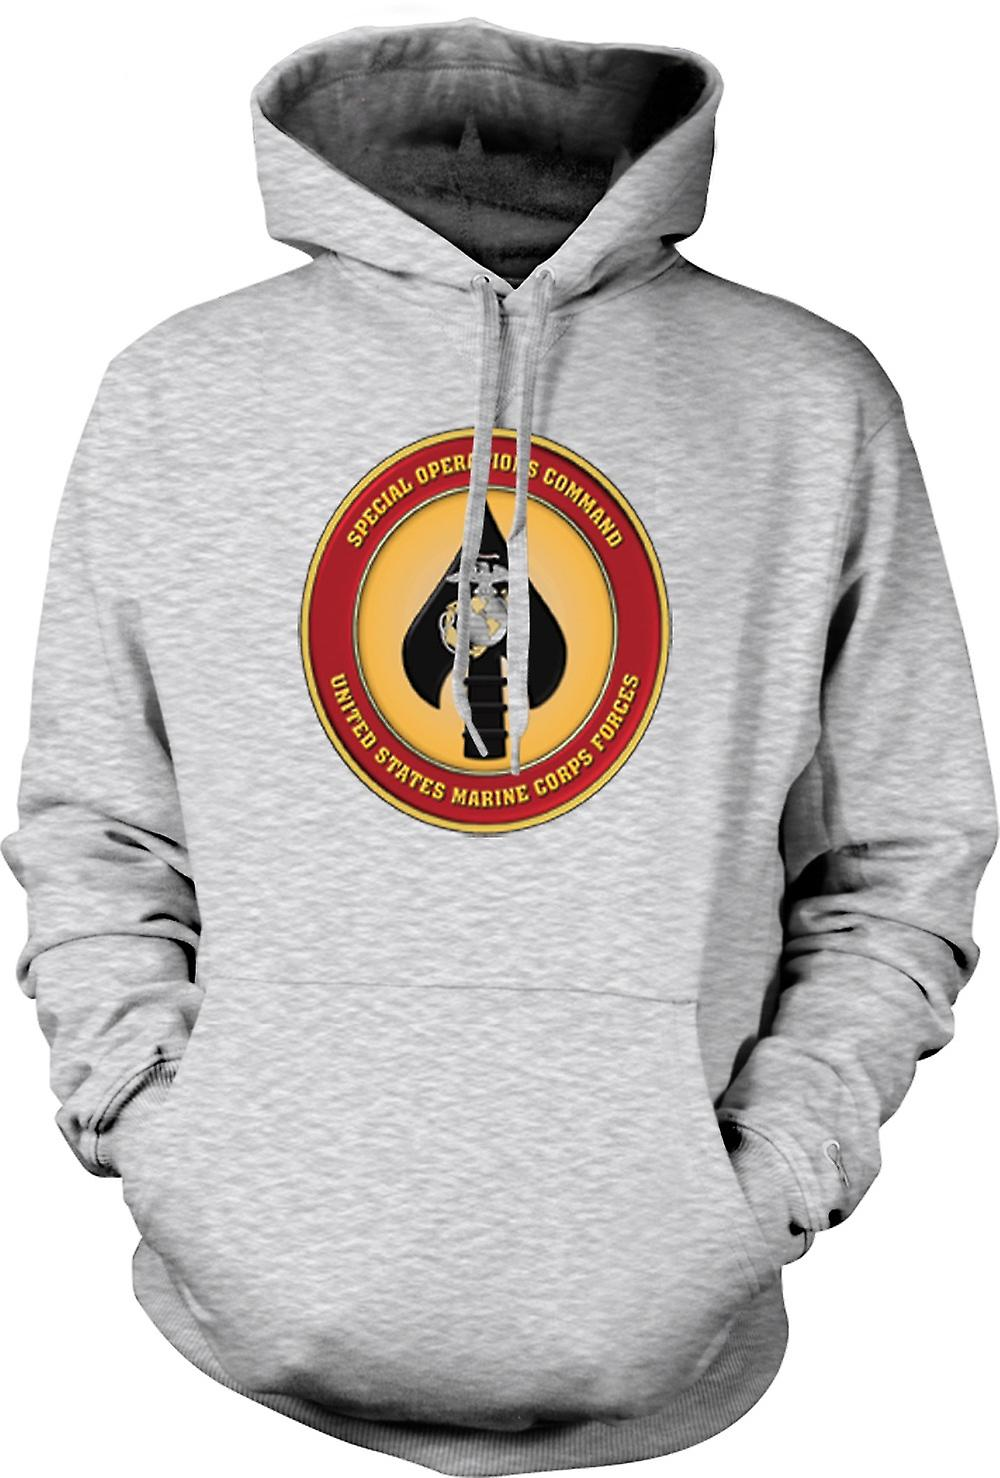 Mens Hoodie - Special Opperations & Command